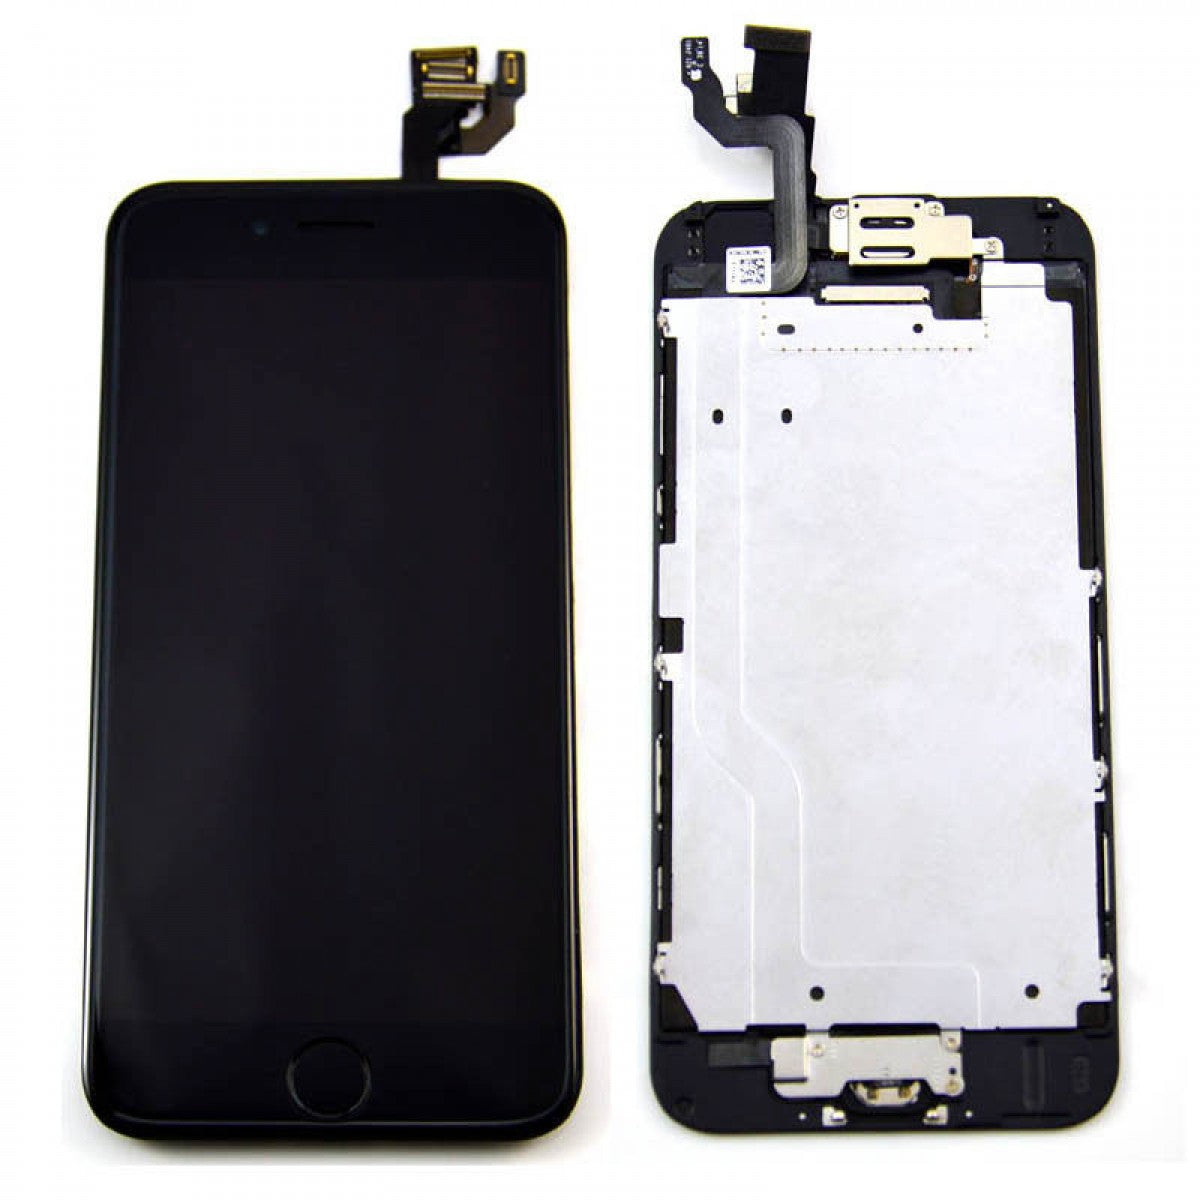 Lcd Digitizer Replacement for iPhone 6 Black